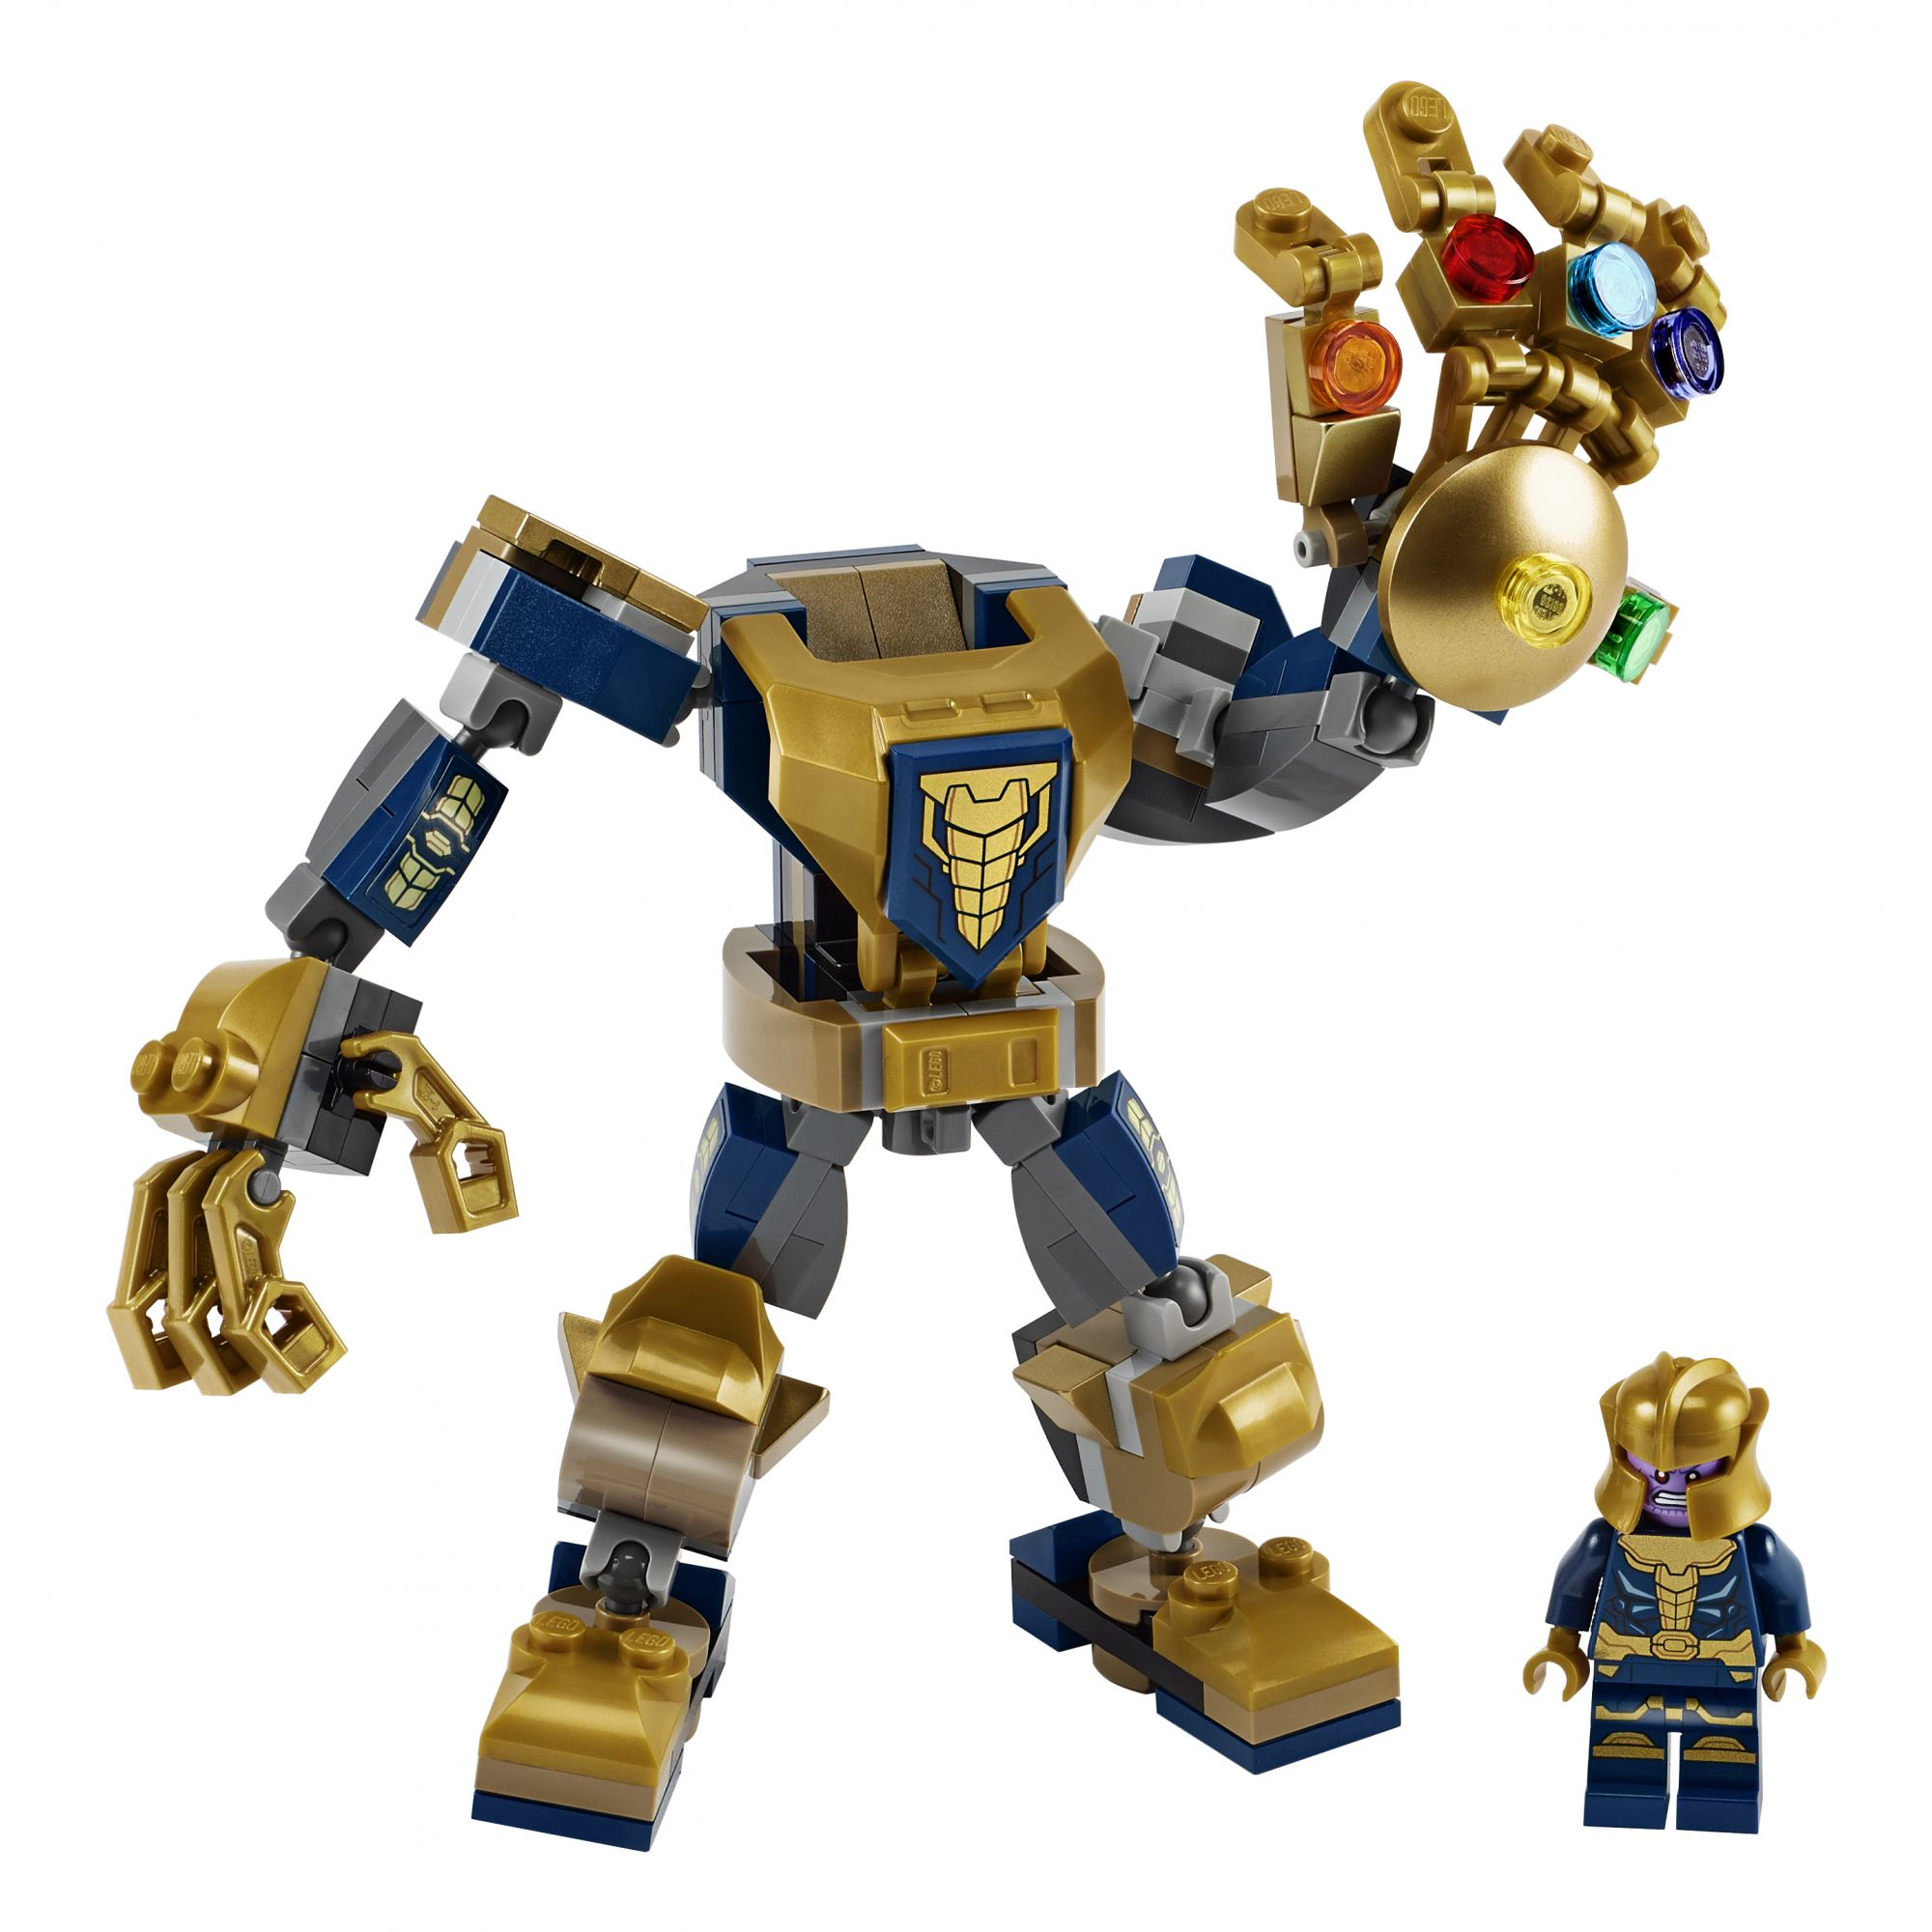 LEGO Marvel Avengers Movie 4 Mech Thanos - 76141